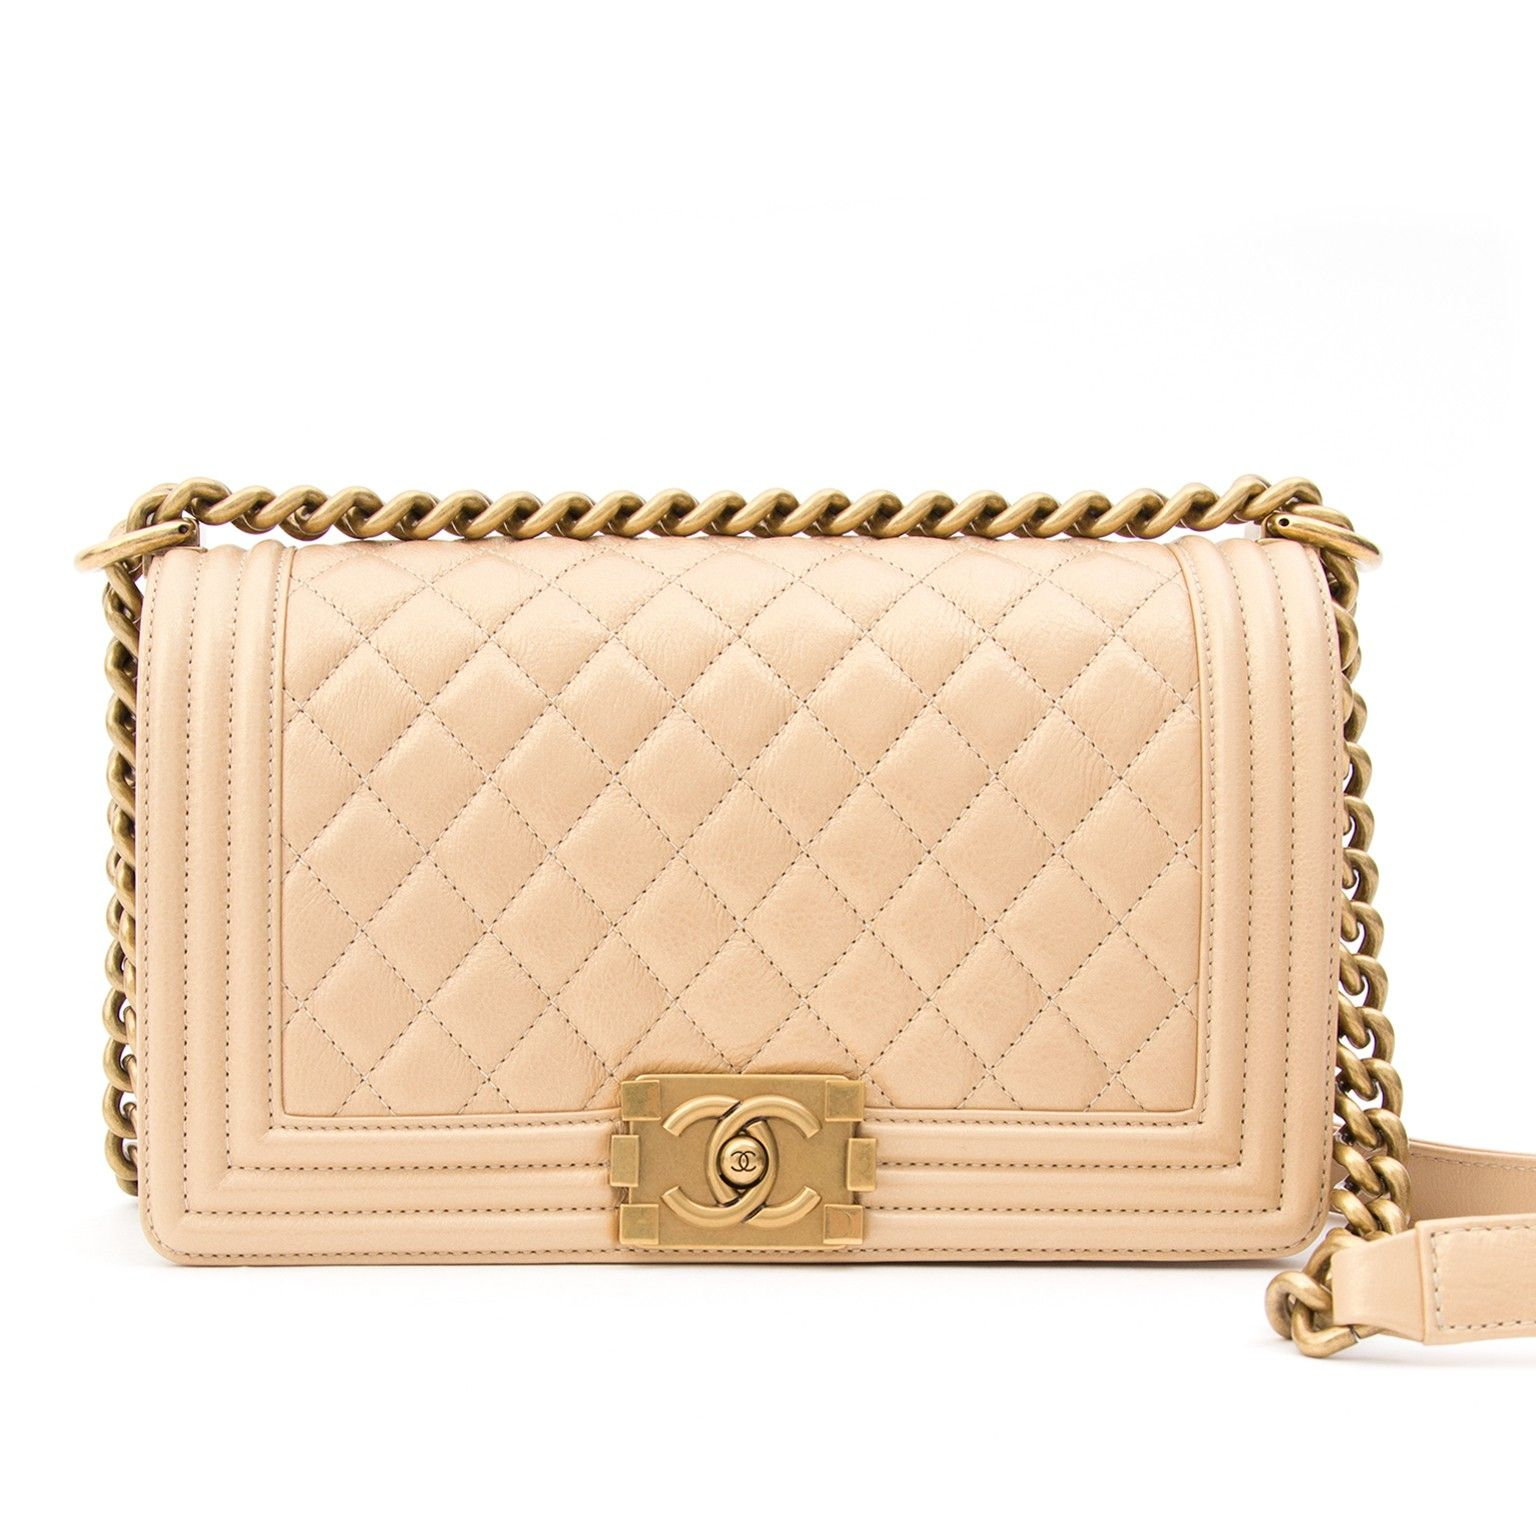 0c222222 Chanel Pearl Beige Calfskin Medium Boy Bag | wish list | Chanel ...